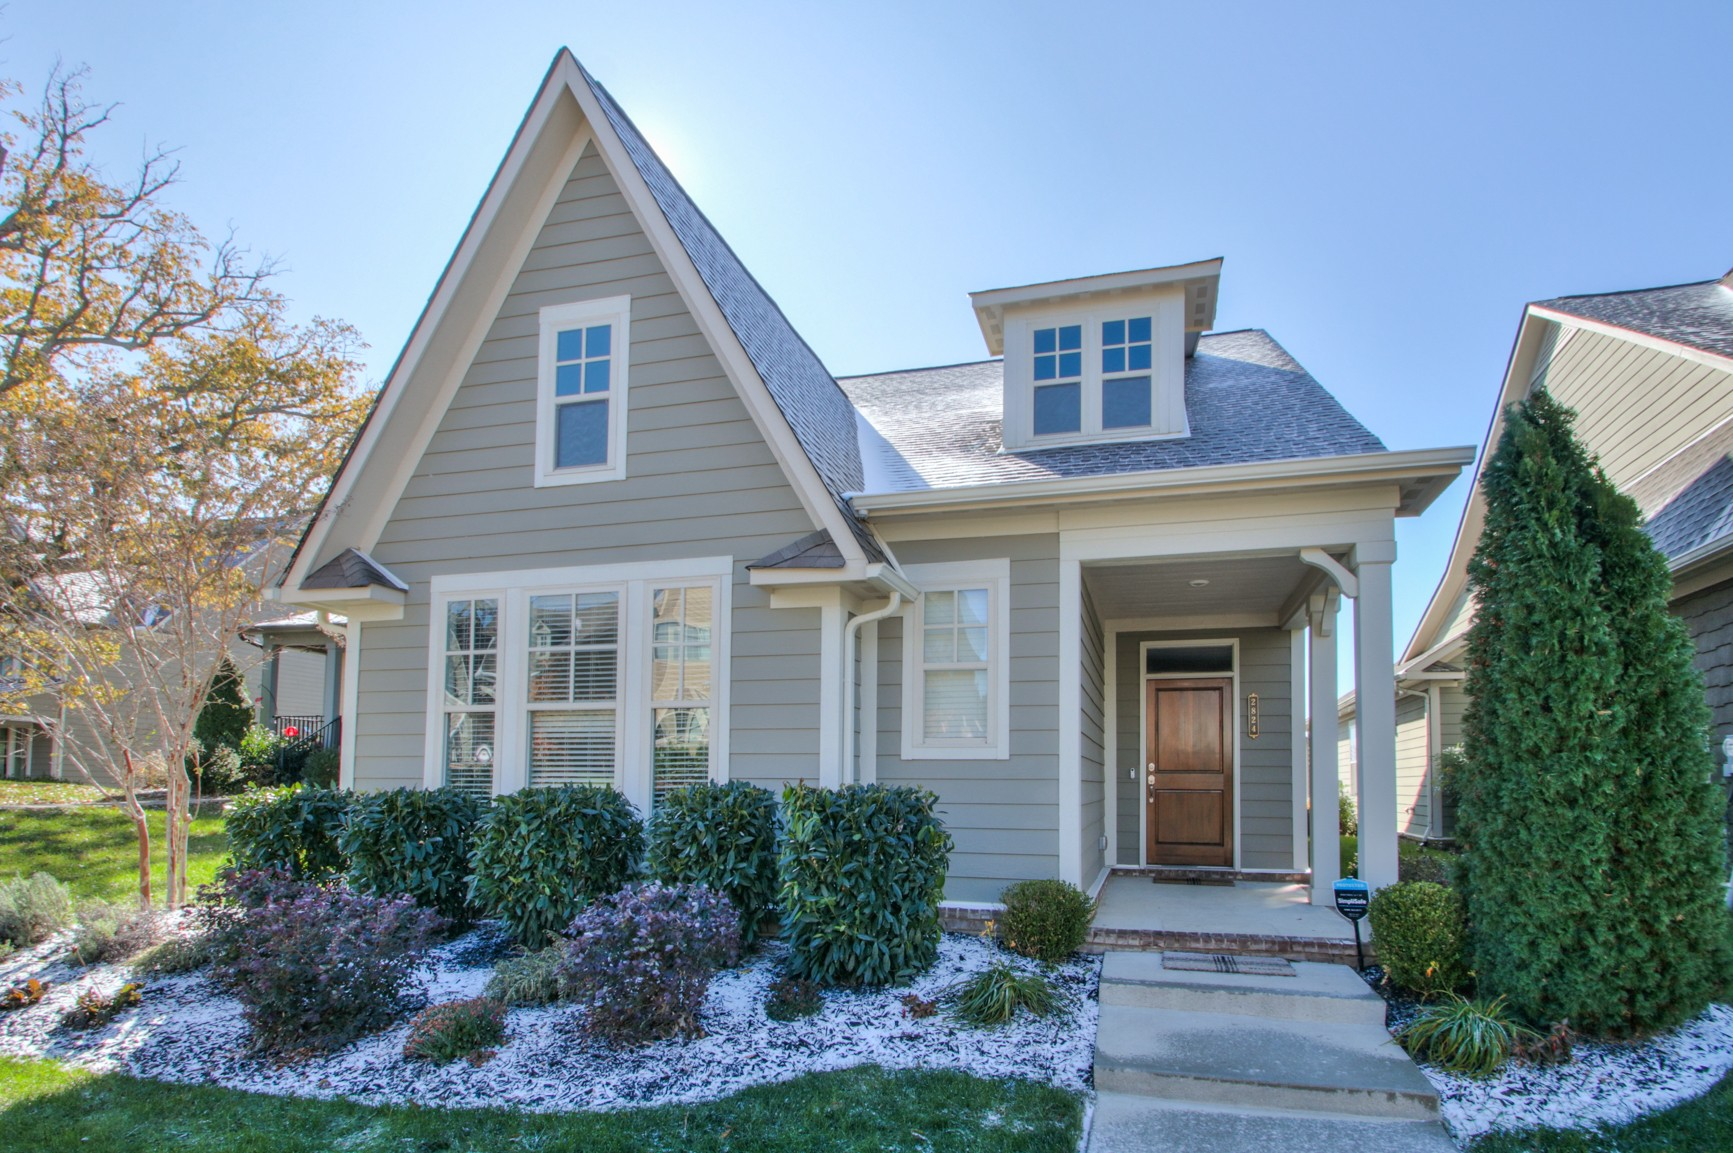 2824 Americus Dr, Thompsons Station, TN 37179 - Thompsons Station, TN real estate listing